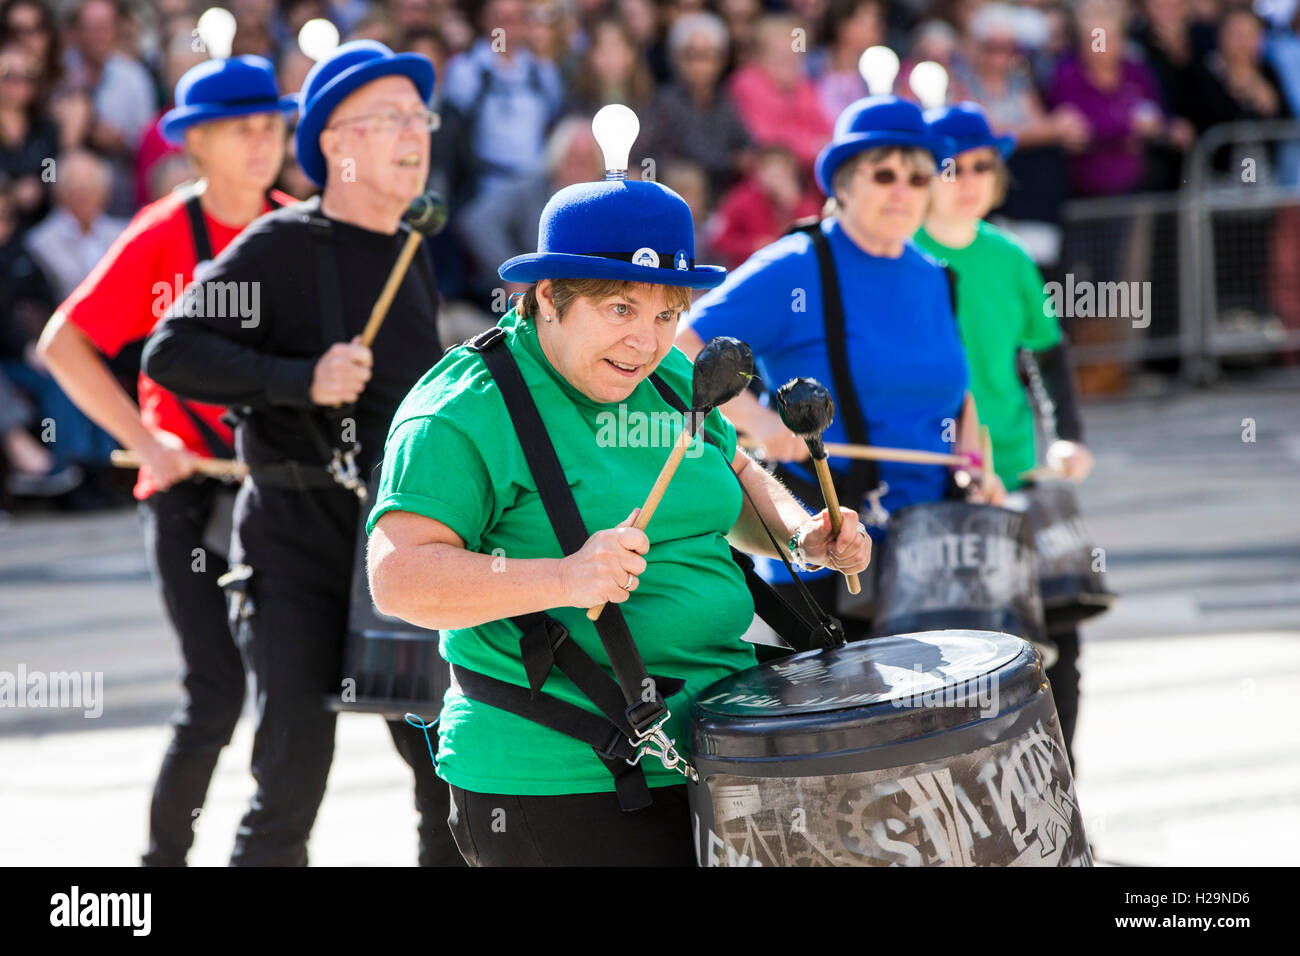 London, UK. 25th September, 2016. Drummers at the Pearly Kings and Queens Harvest Festival at Guildhall Yard, London, - Stock Image